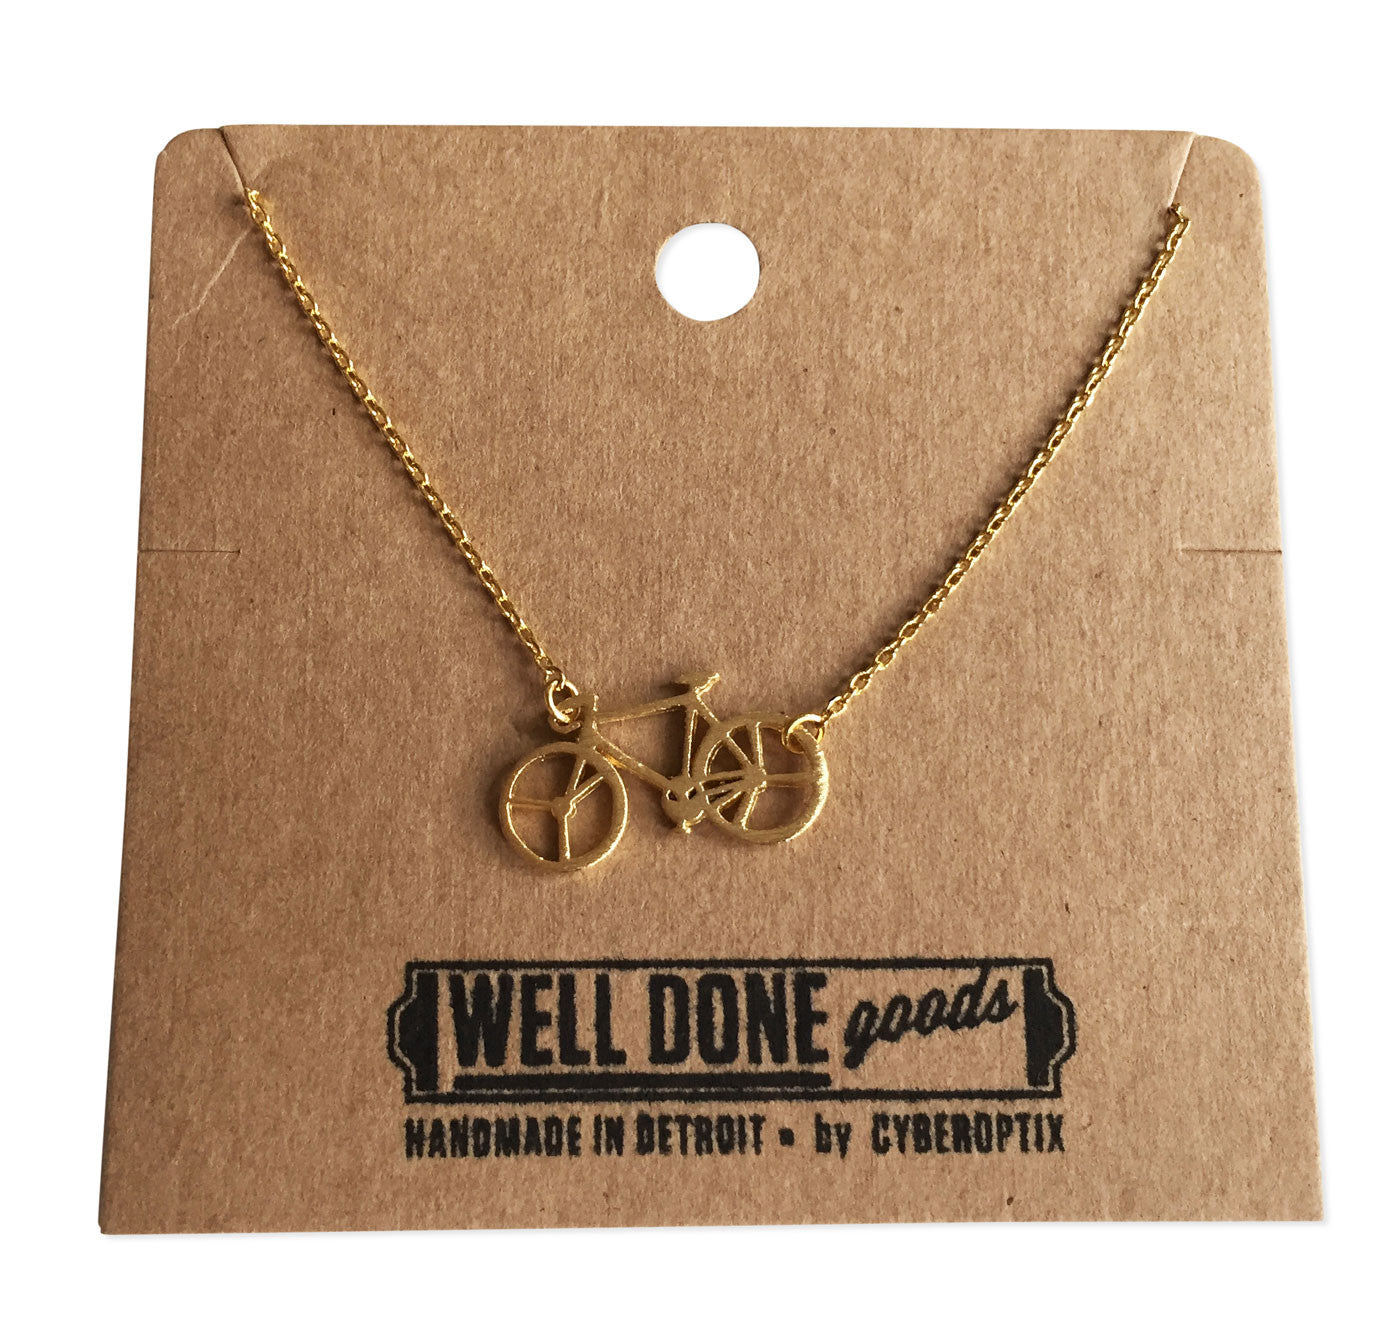 Bicycle pendant necklace well done goods bicycle pendant necklace gold delicate necklace by well done goods aloadofball Gallery